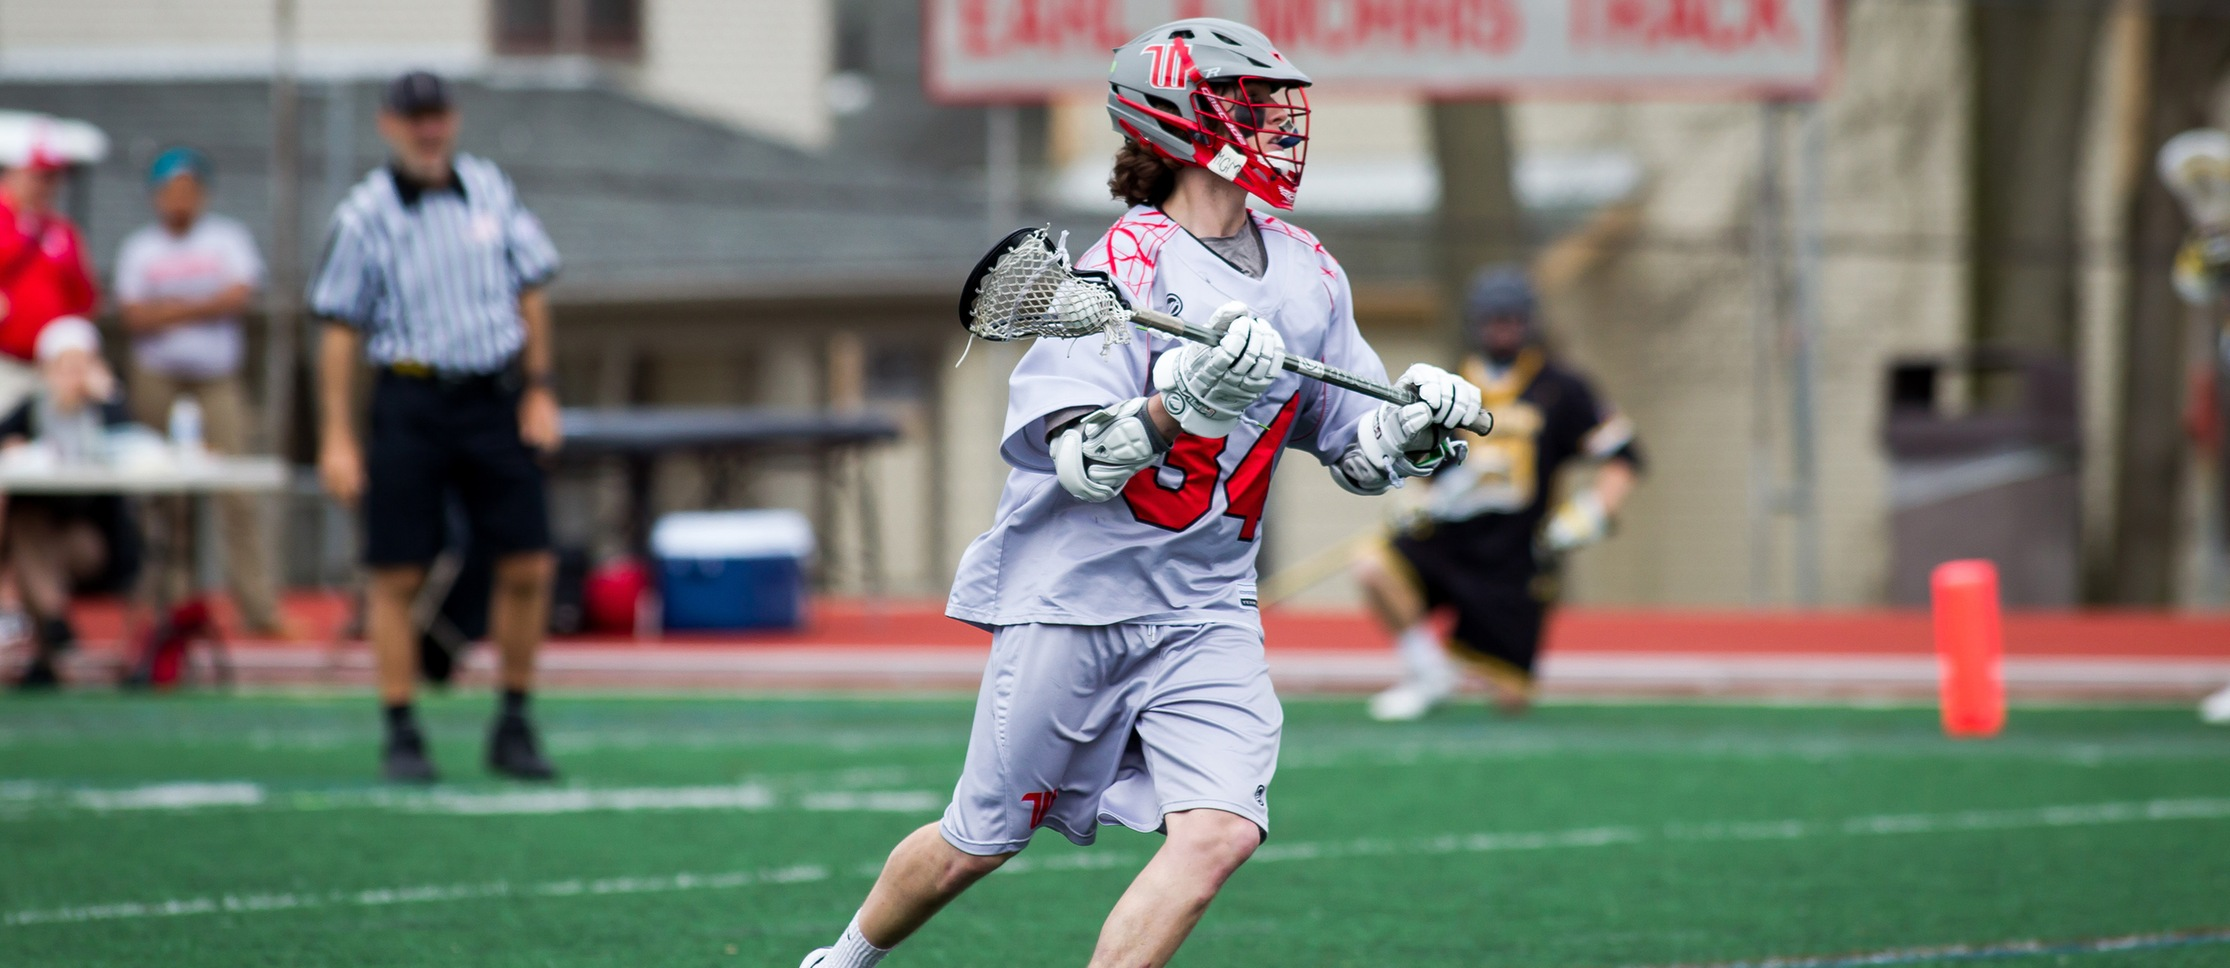 Tigers Open Up NCAC Play with Big Win Over Hiram